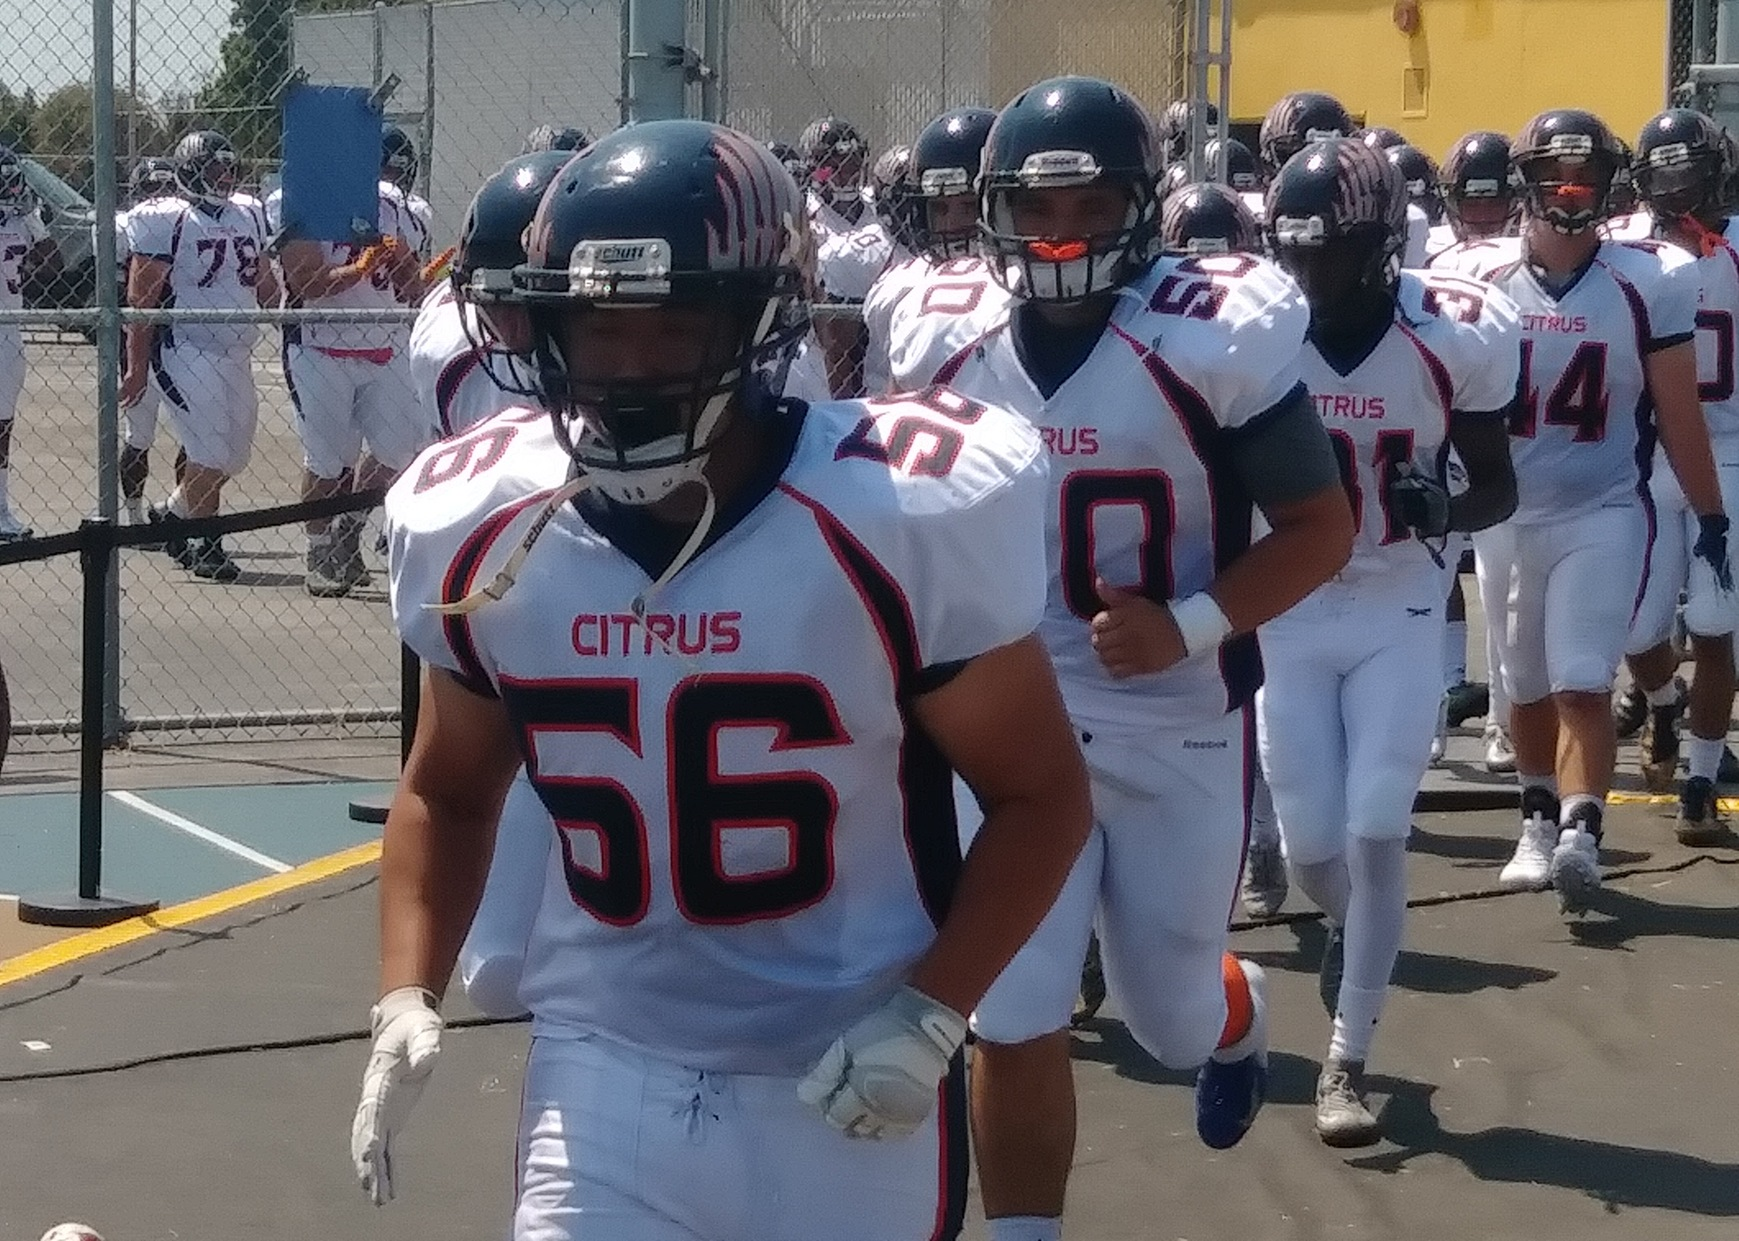 Citrus heads out to the field before Saturday's big win over West LA. Image credit: Jeremy Meyer